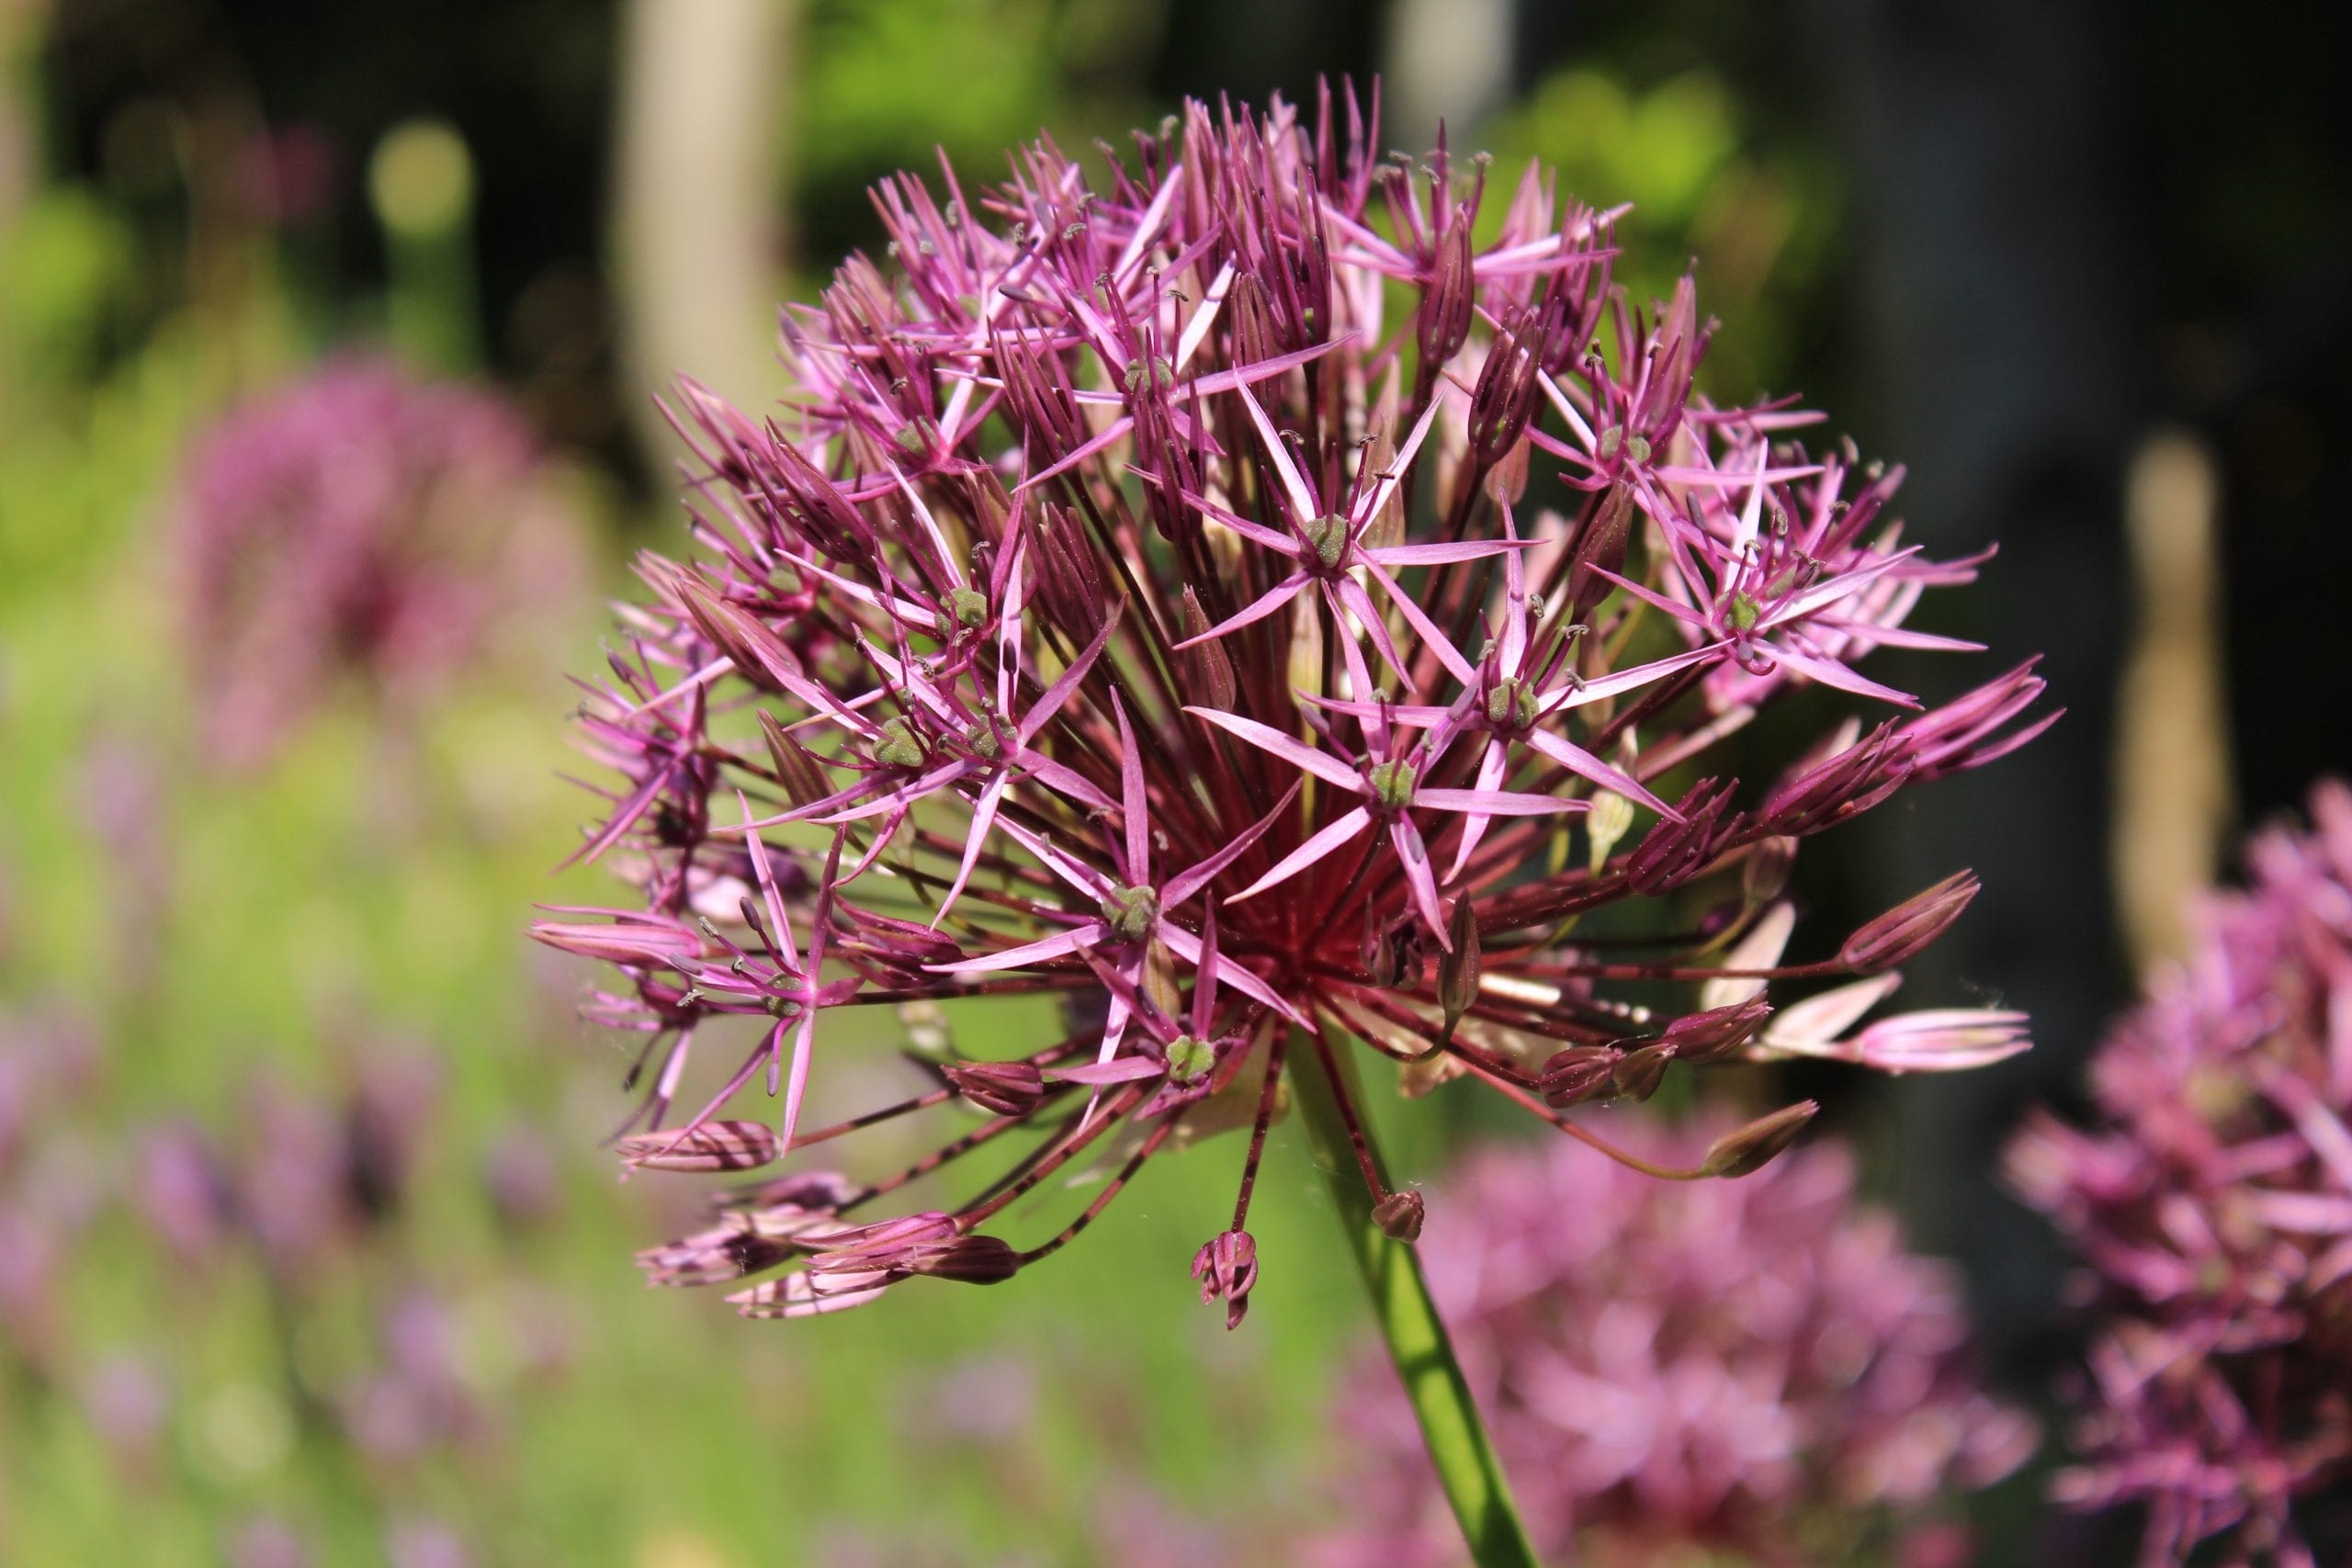 Another free photo of an Allium Cristophii